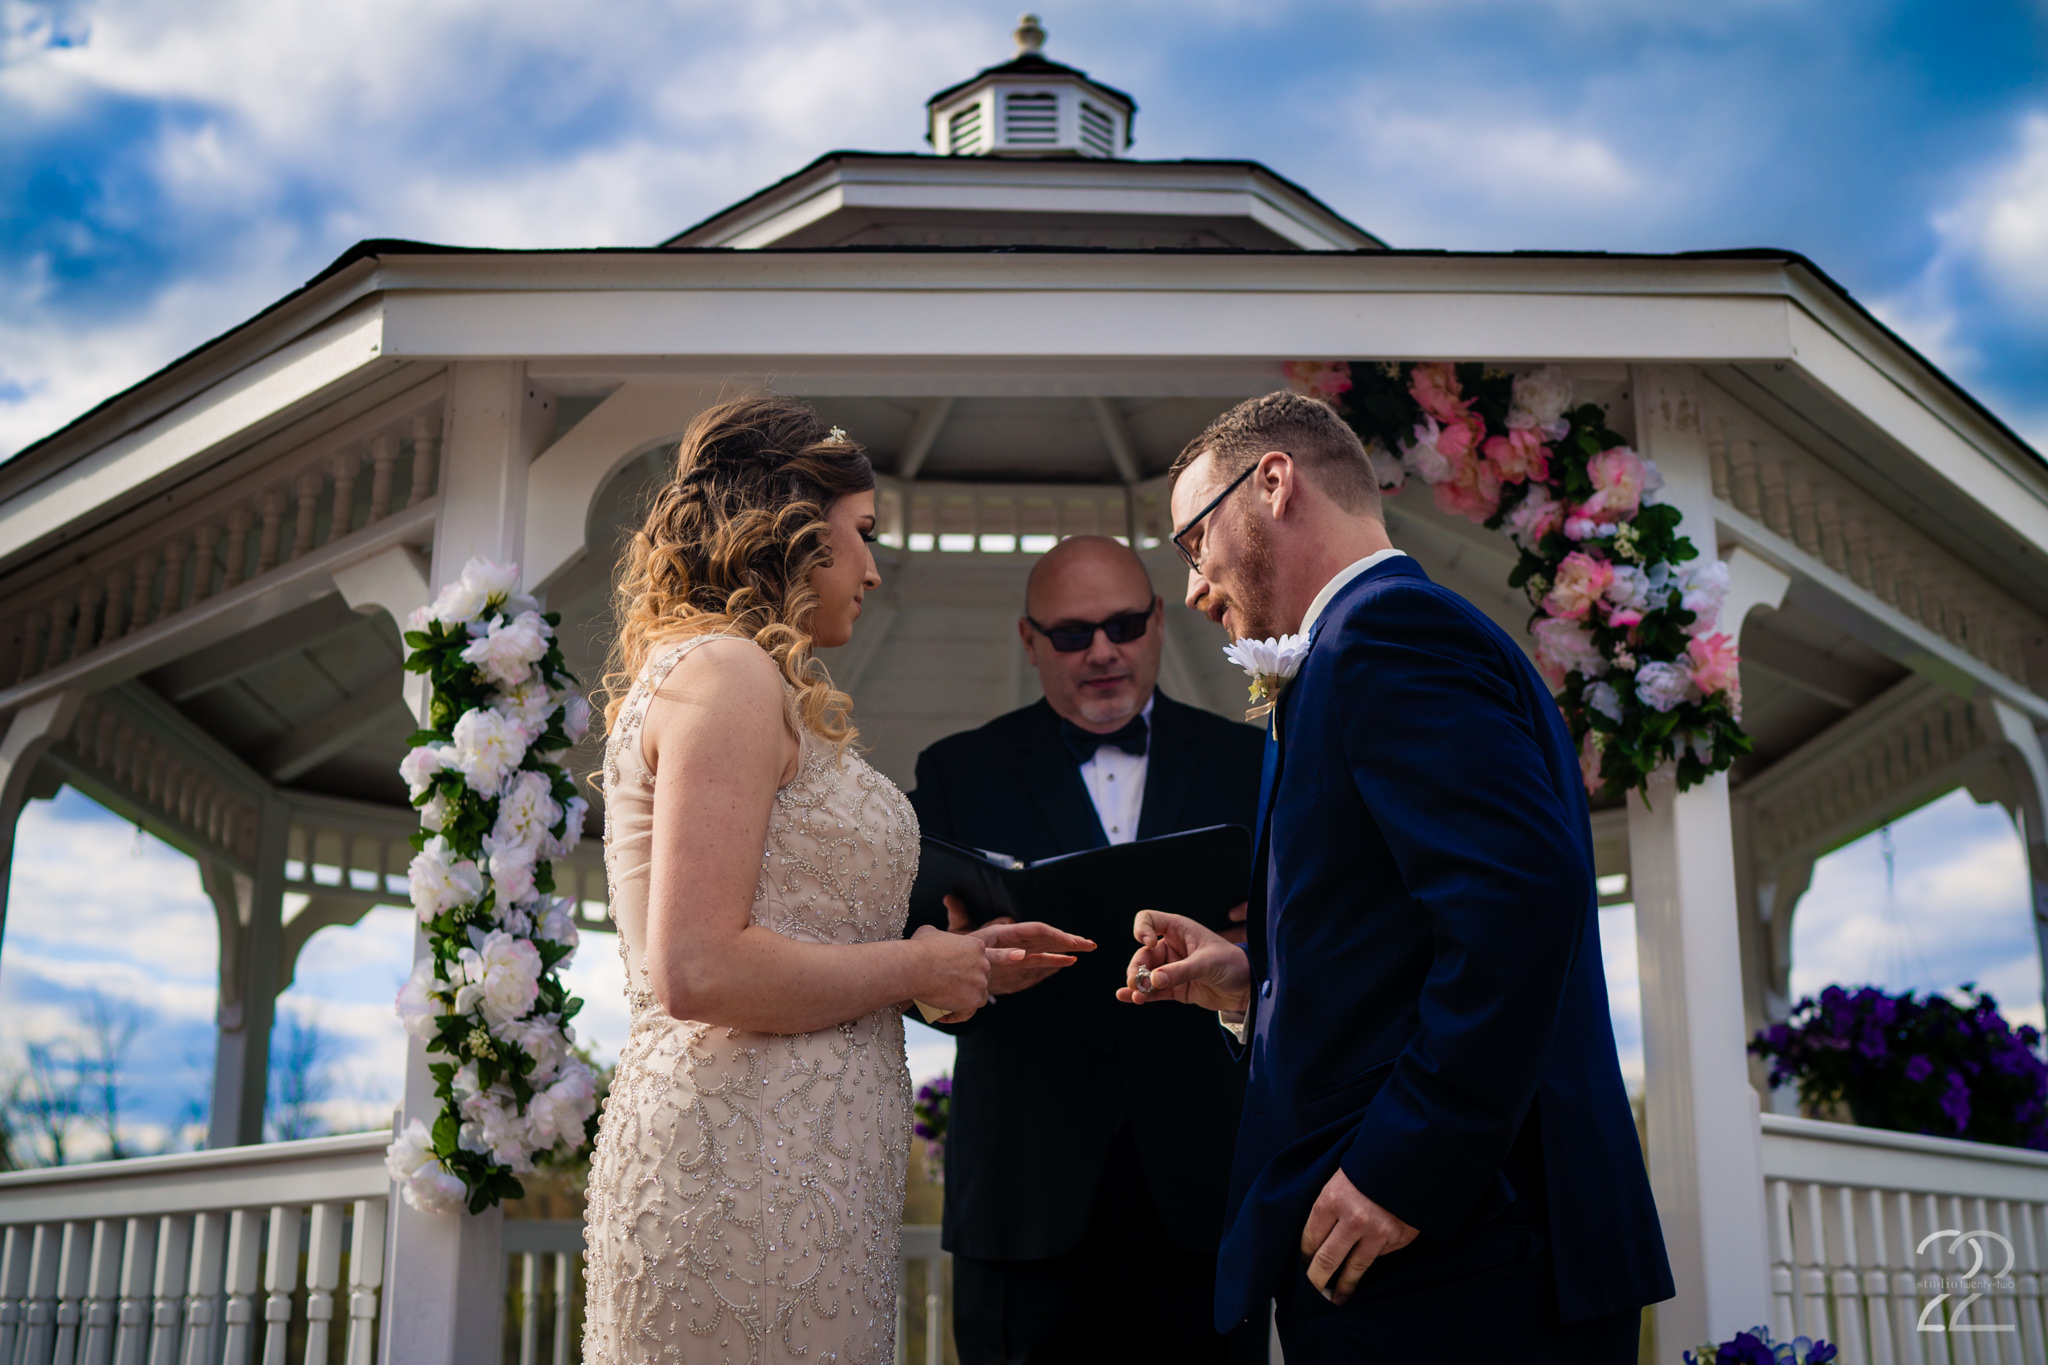 The exchanging of the rings is an extremely special part of the wedding ceremony, and Erica + Nick had beautiful vows to accompany the ring exchange. Aston Oaks Golf Club in Cincinnati, Ohio was a fantastic outdoor wedding venue, and the weather was absolutely perfect for their special wedding day.